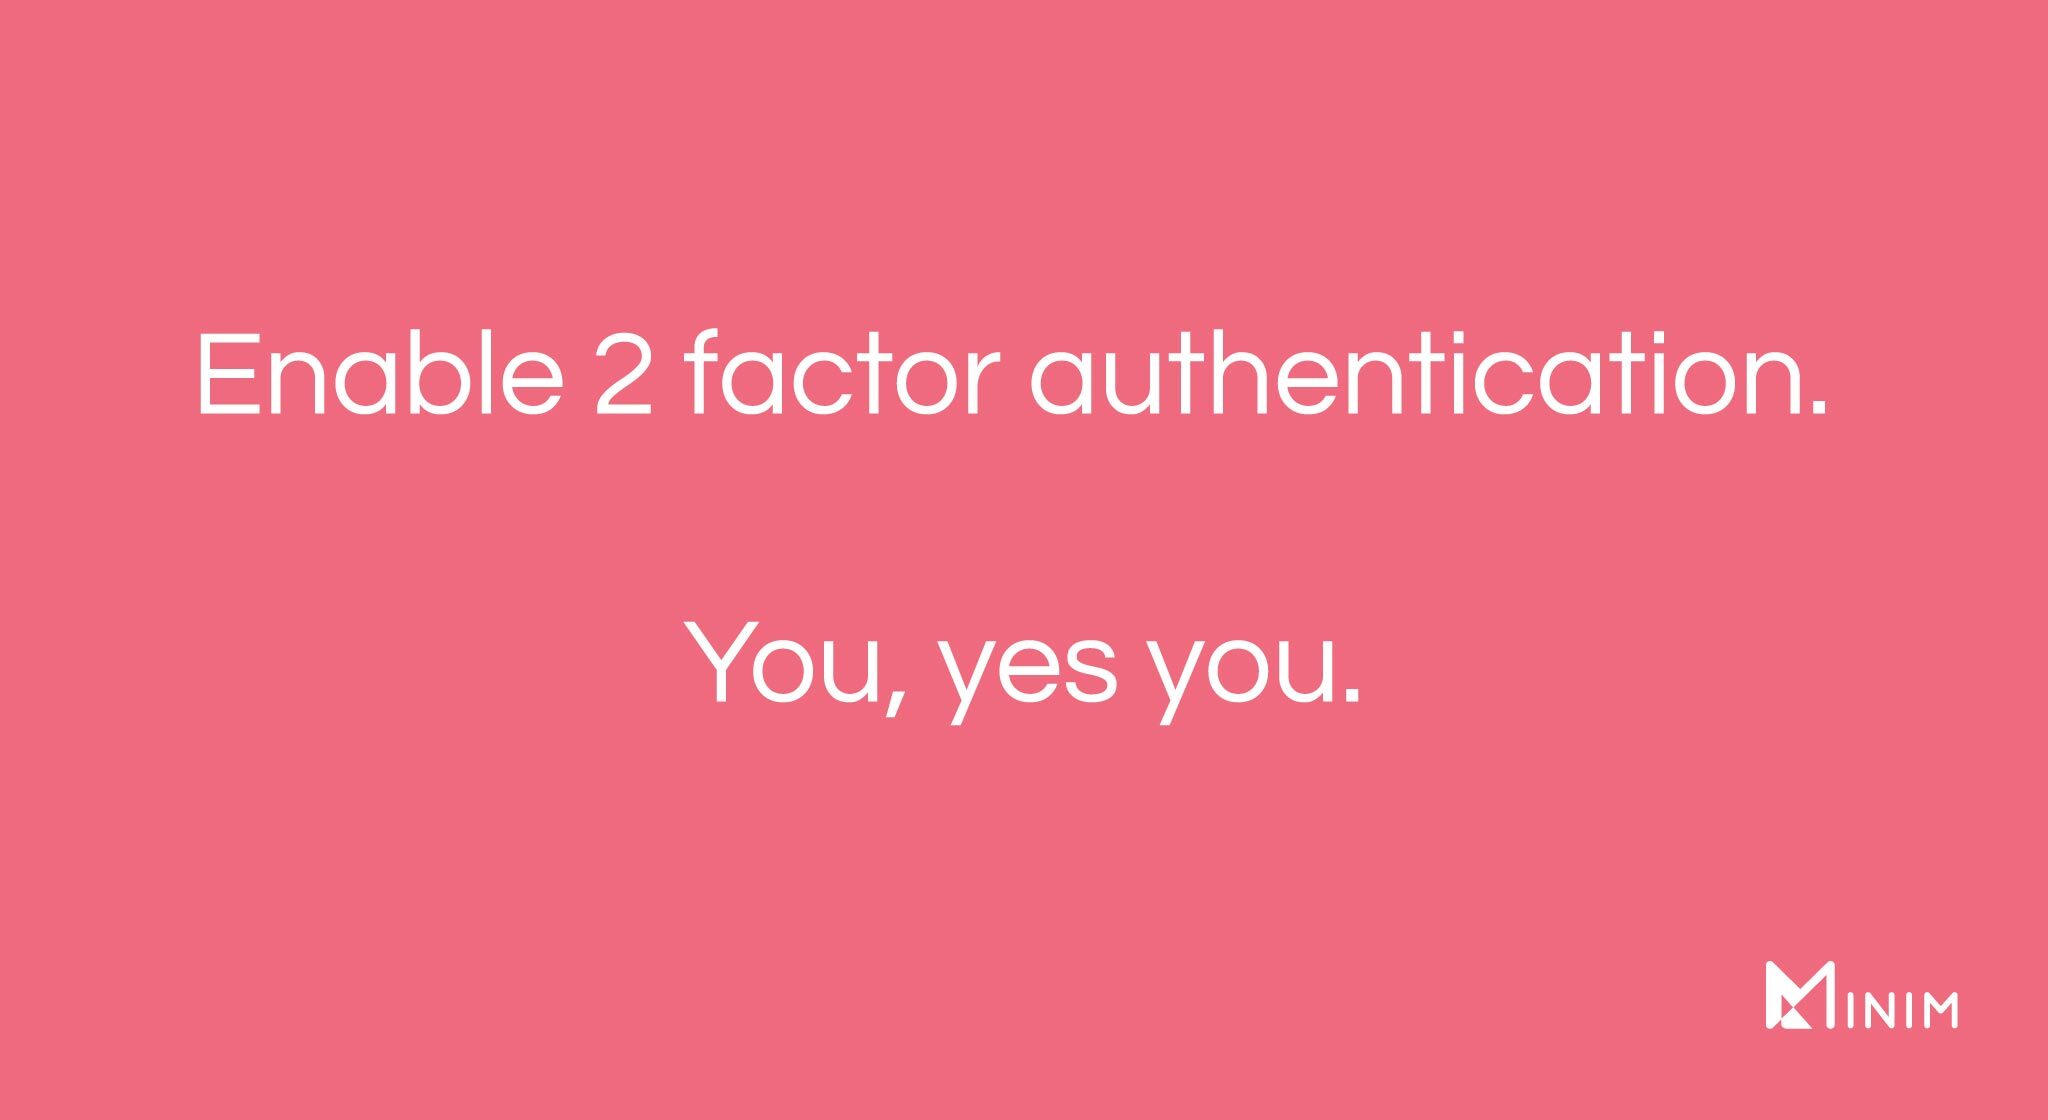 Enable 2 factor authentication